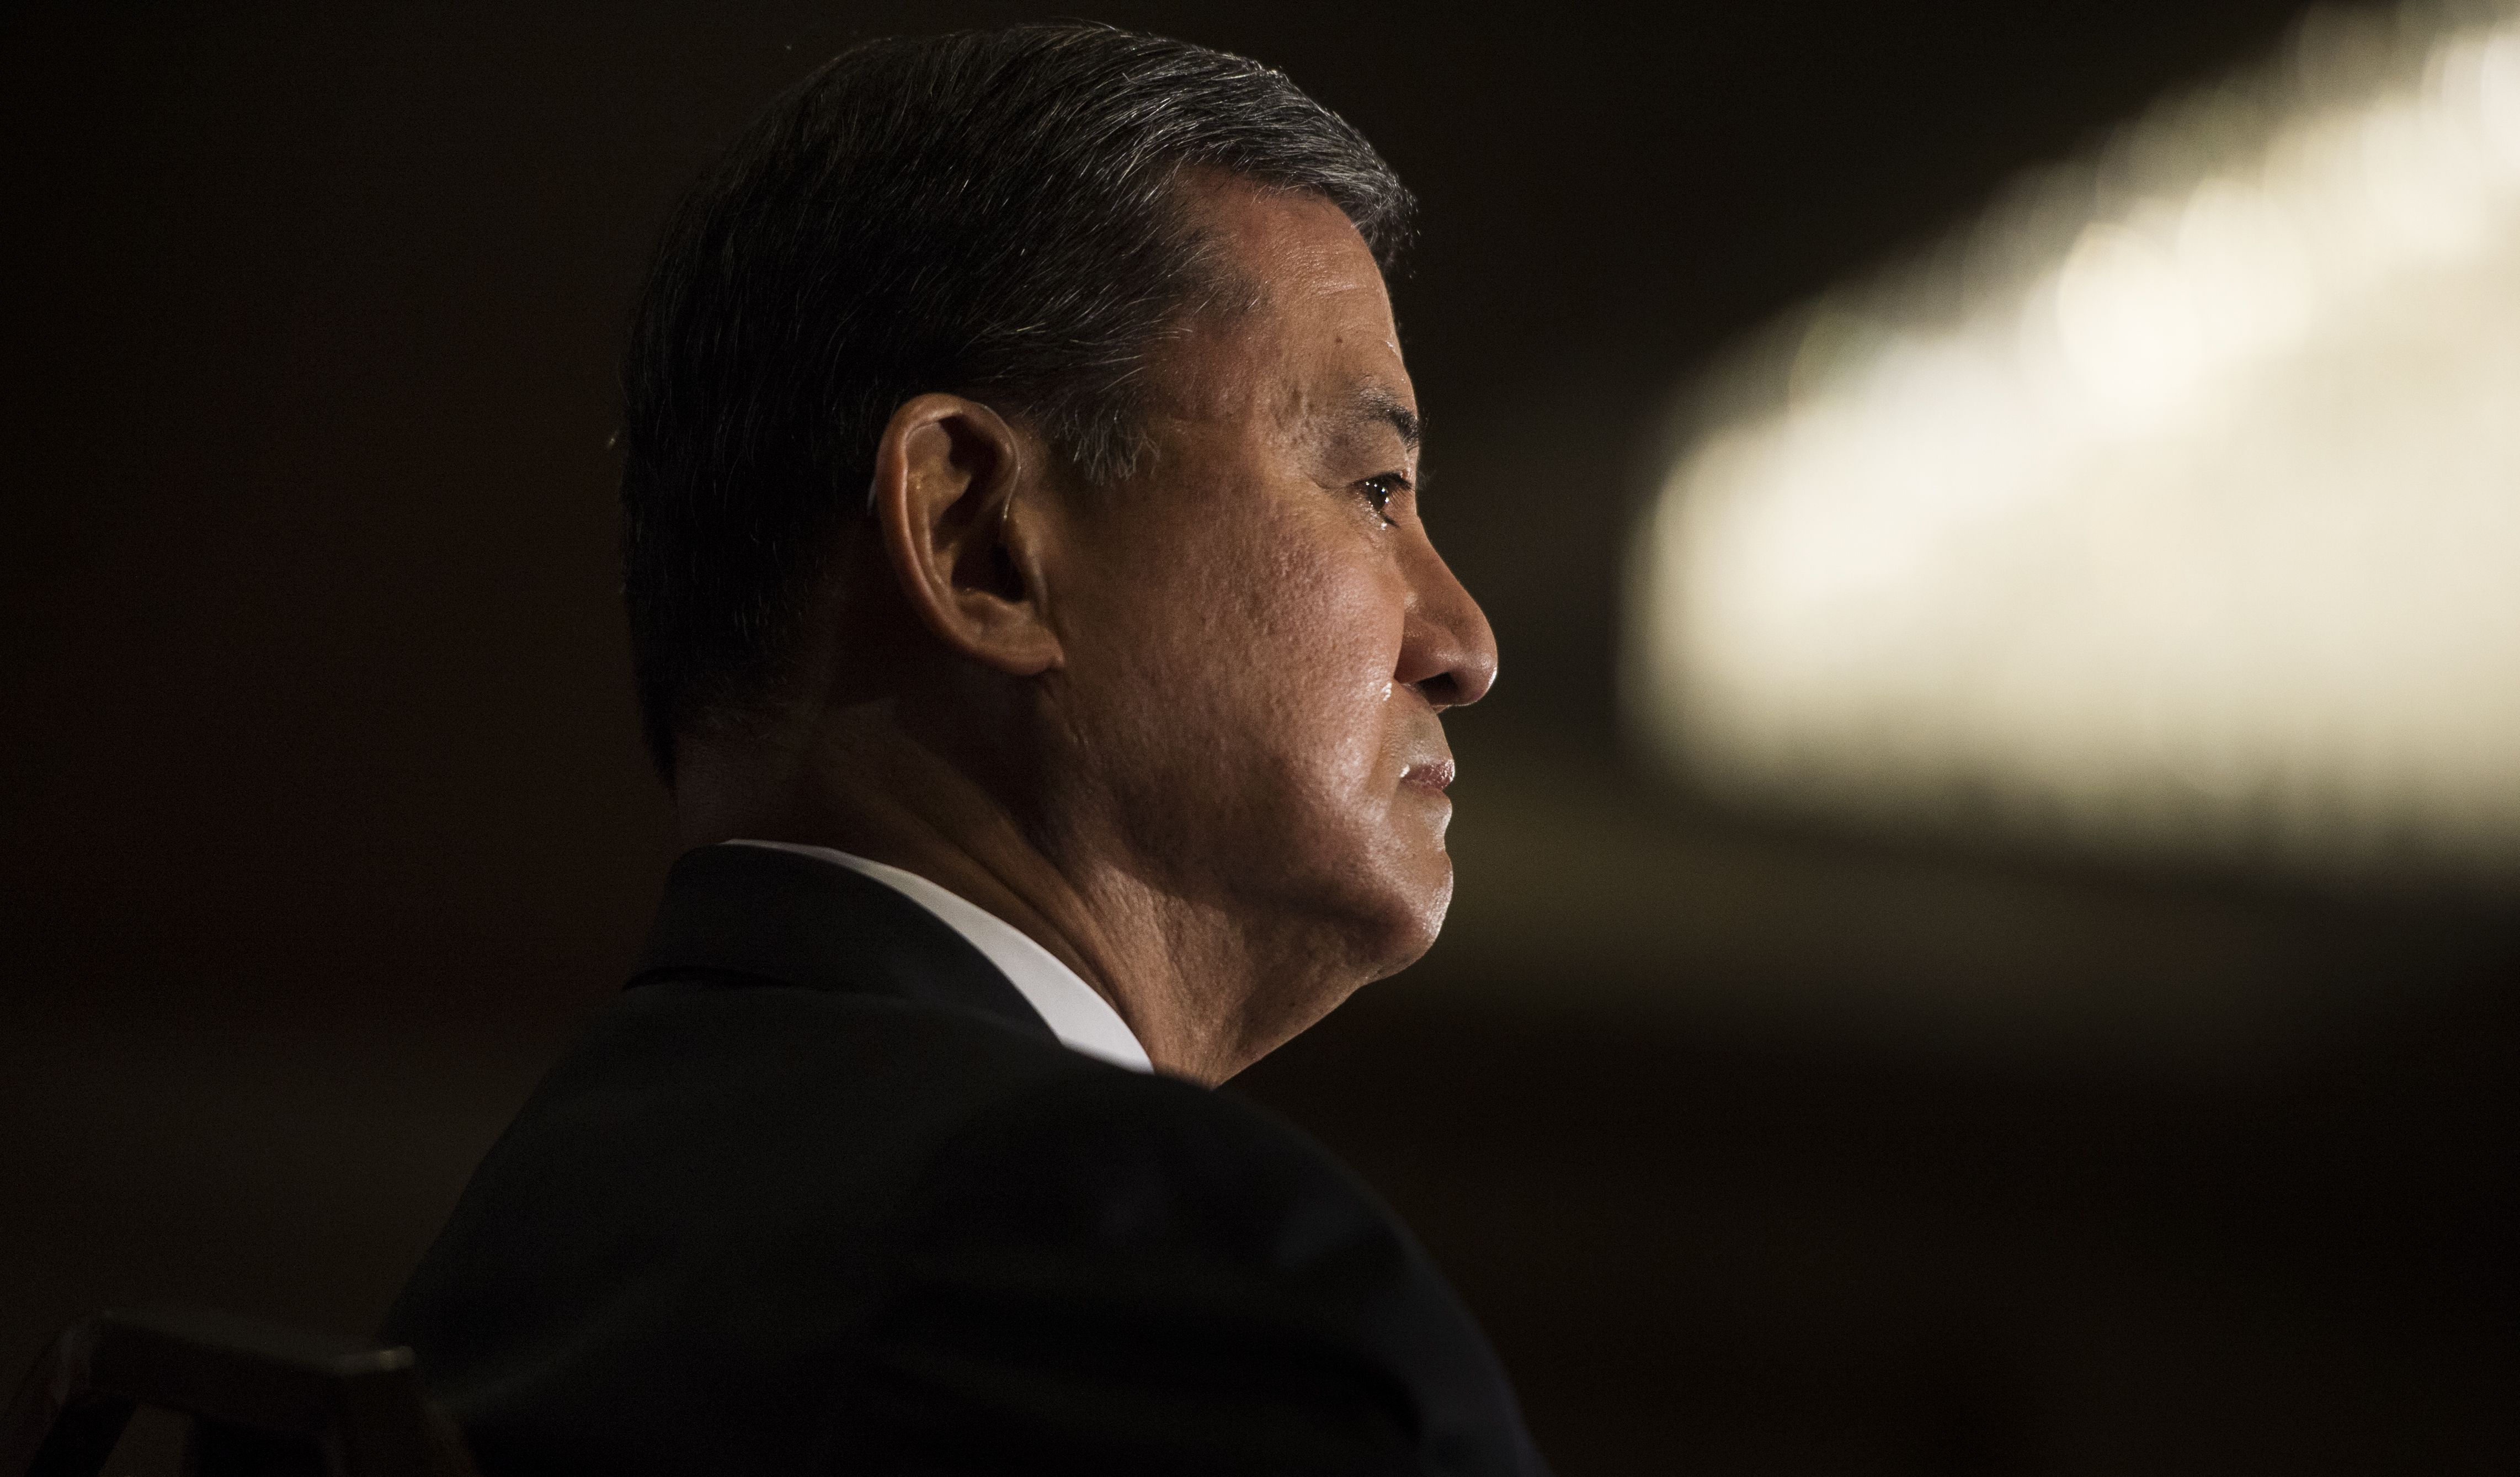 Veterans Affairs Secretary General Eric Shinseki gives the keynote address at the National Coalition for Homeless Veterans Annual Conference in Washington, D.C., on Friday, May 30, 2014.